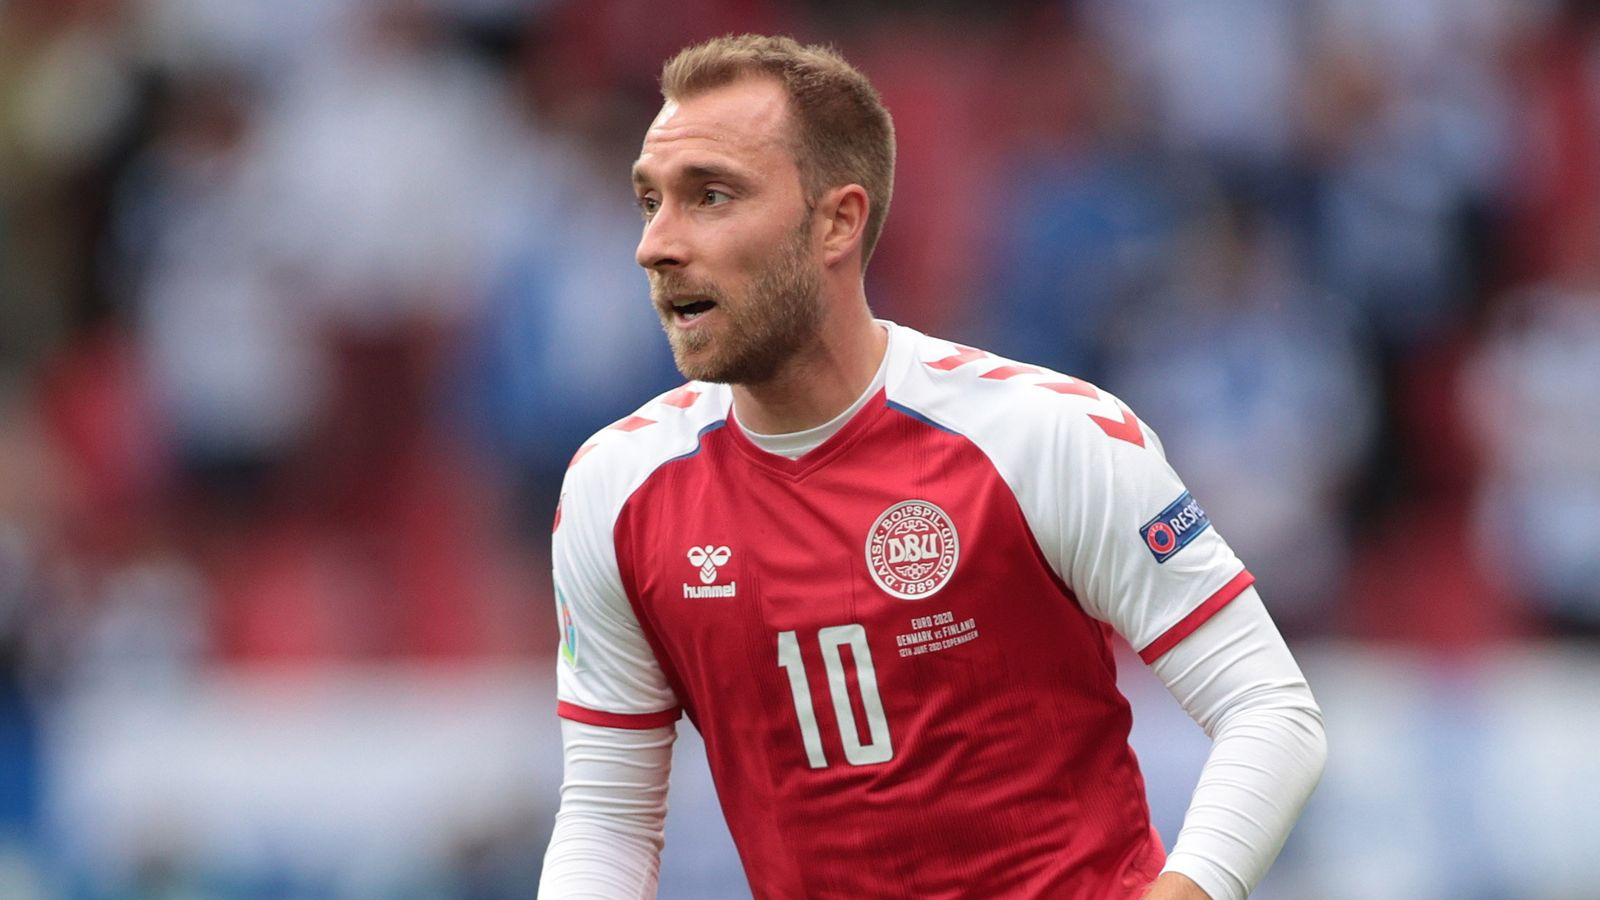 Euro 2020: Christian Eriksen smiling and laughing in hospital, Denmark players reveal   World News   Sky News